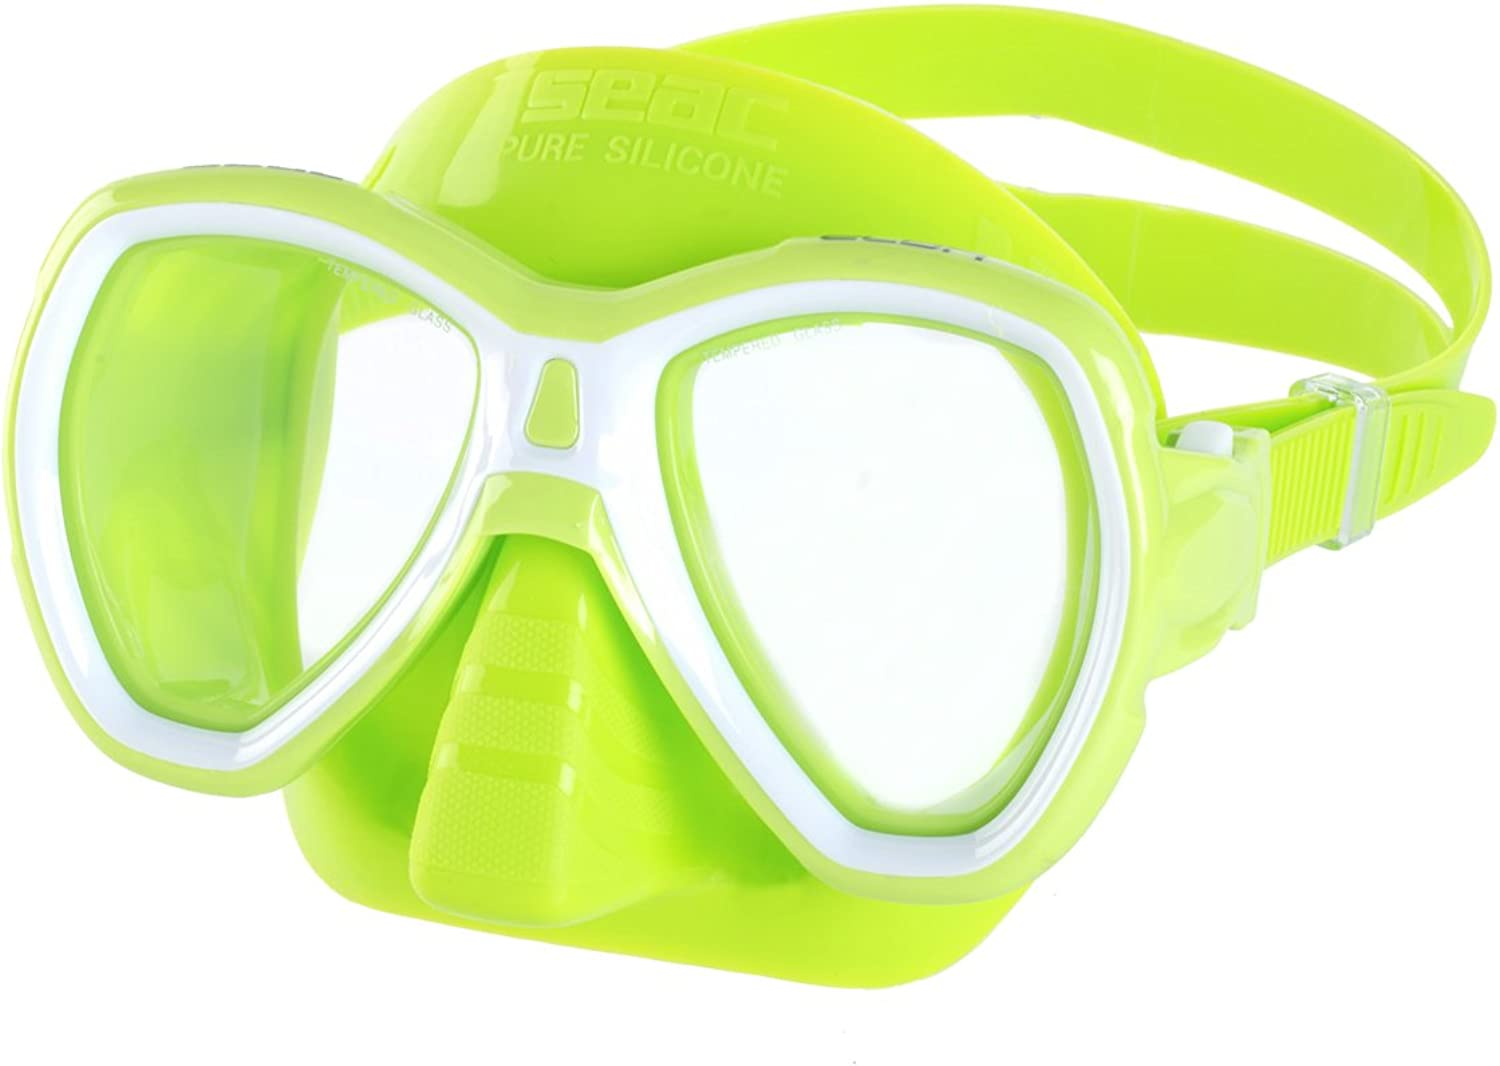 SEAC Elba Snorkeling and Swimming Soft Silicon Mask, Two Lenses, Adults Unisex S GR Green